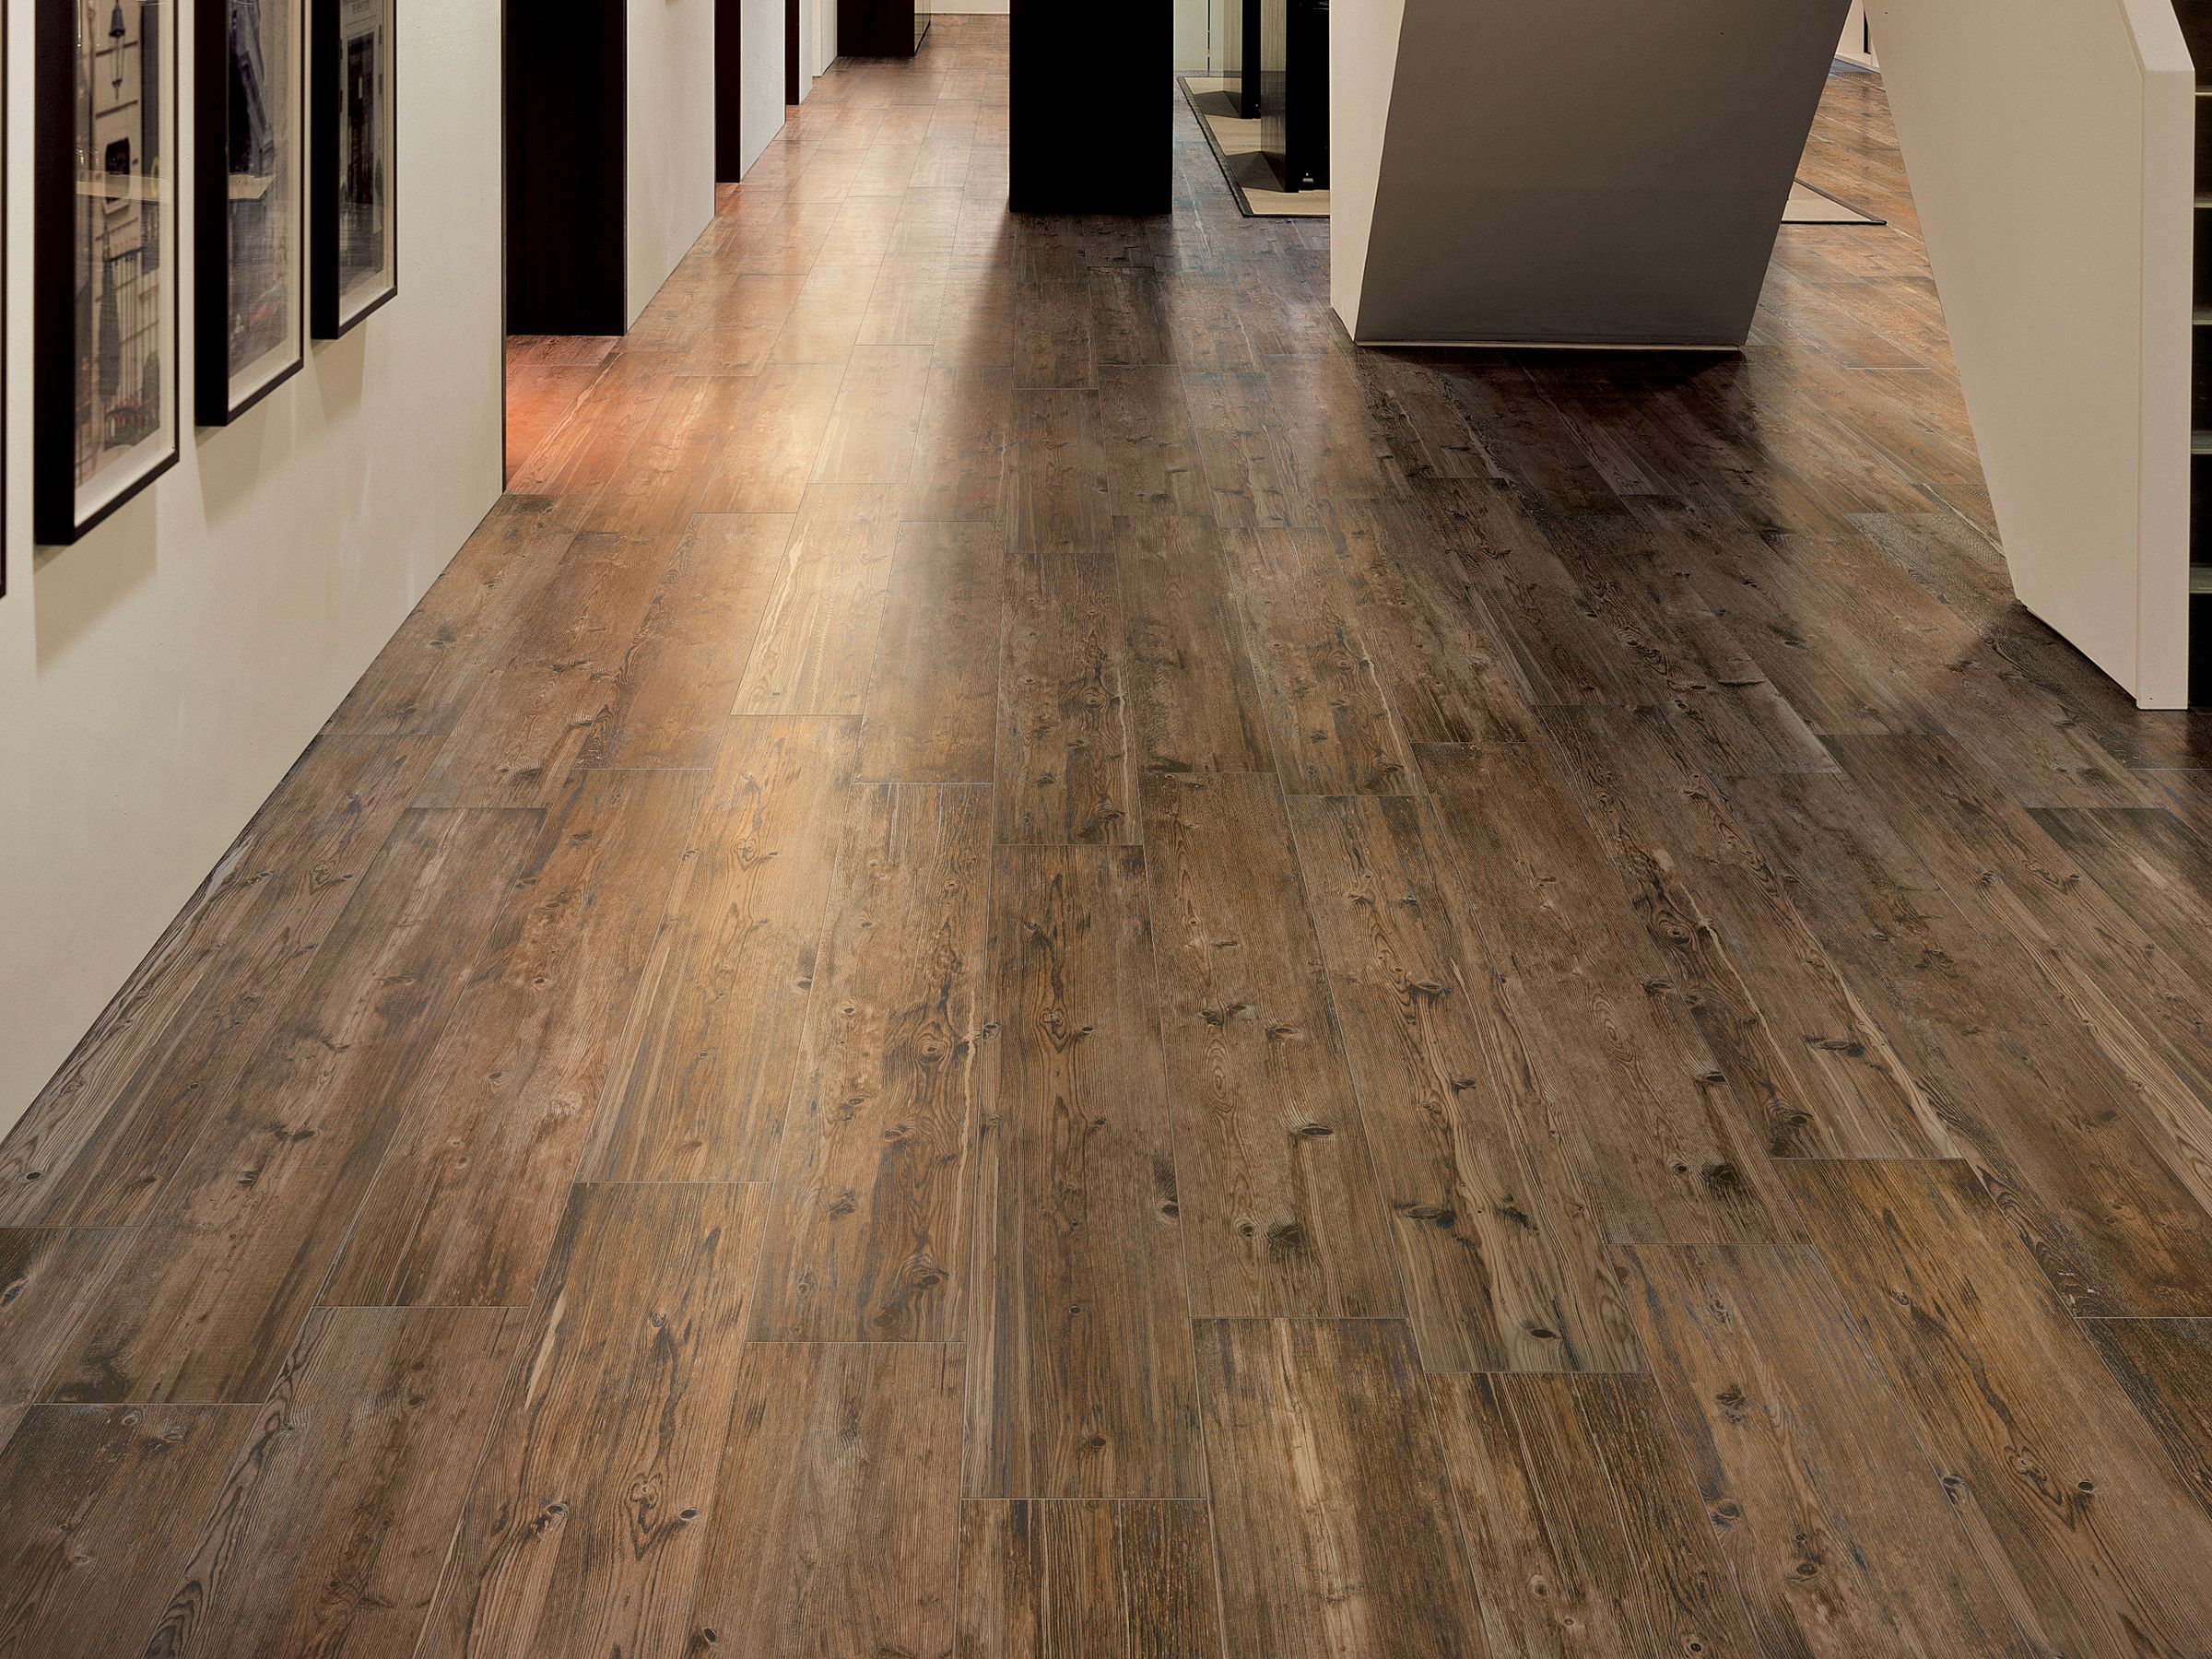 63 best wood effect floor tiles images on pinterest tile wood effect floor tiles google keress doublecrazyfo Image collections